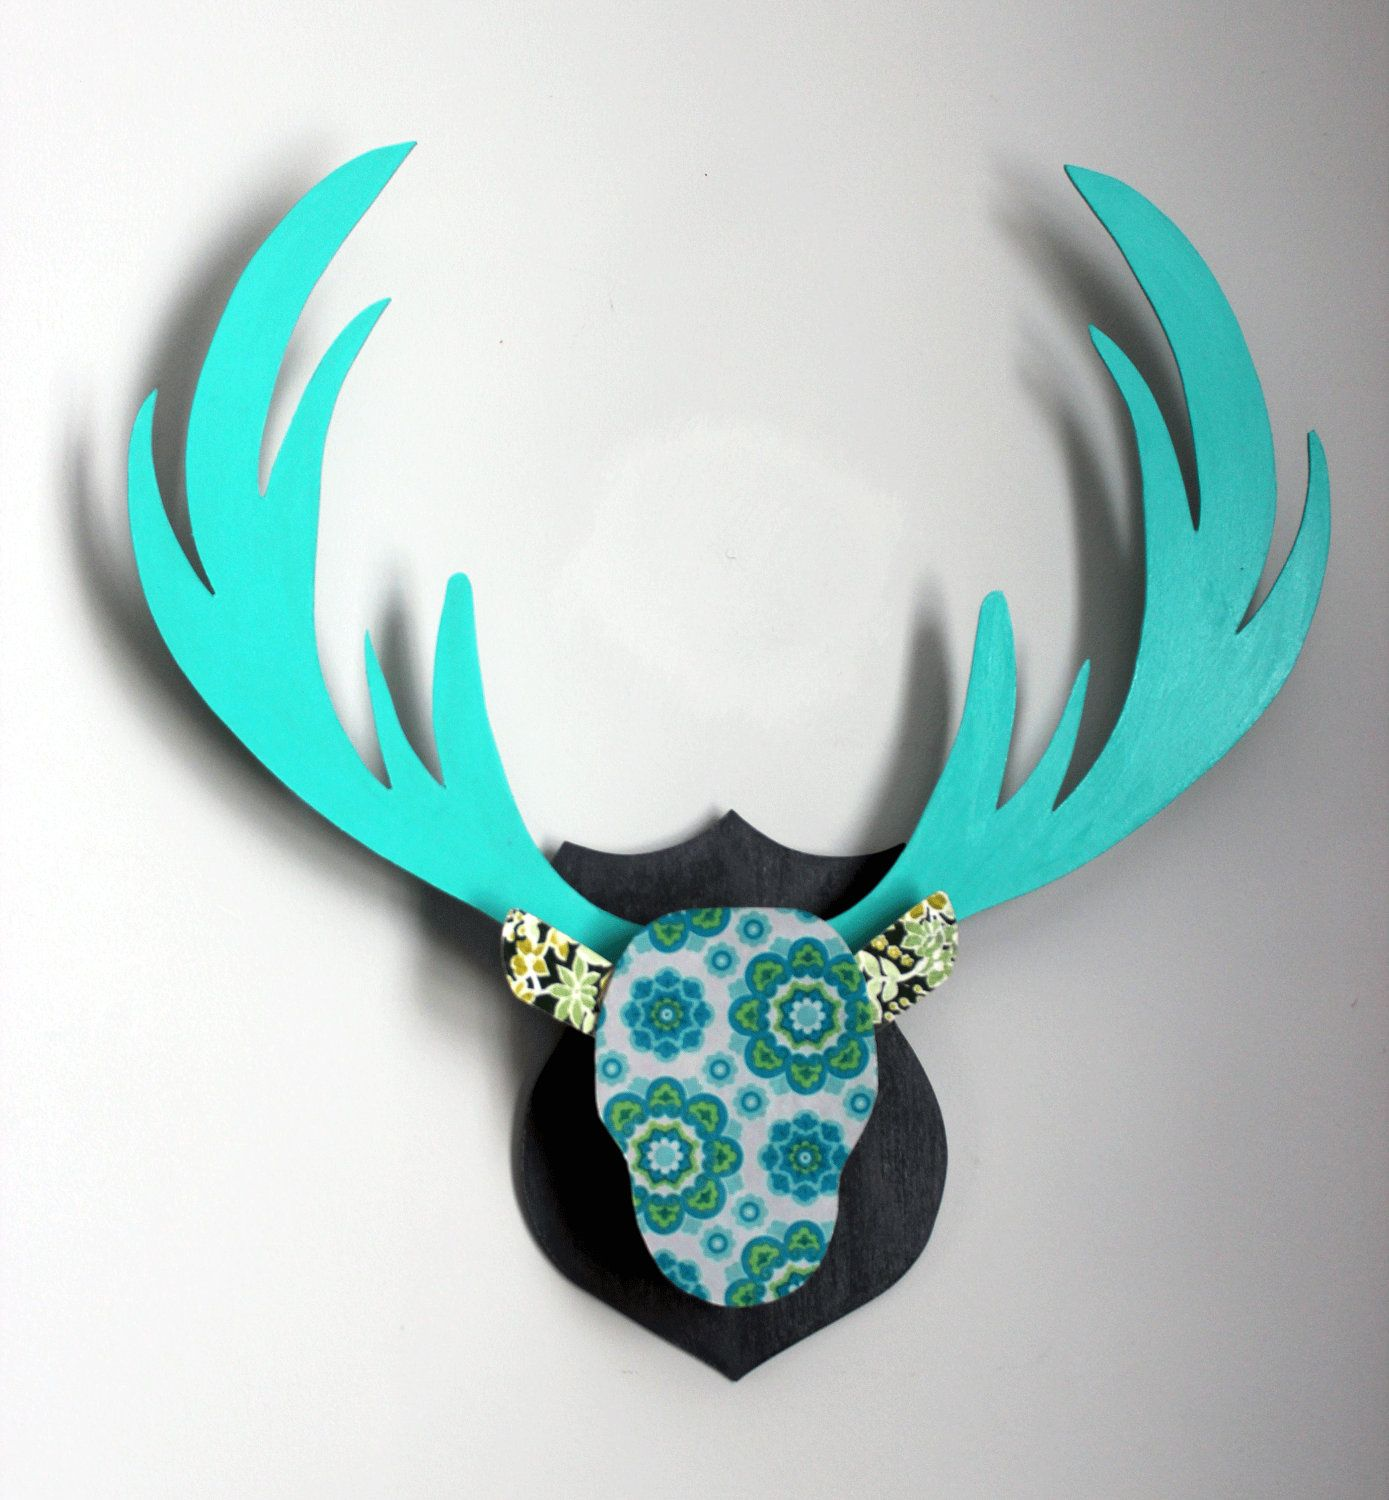 Turquoise Retro Antlers Wall Decor - Retro Wallpaper Pattern, Blue, Green and Grey